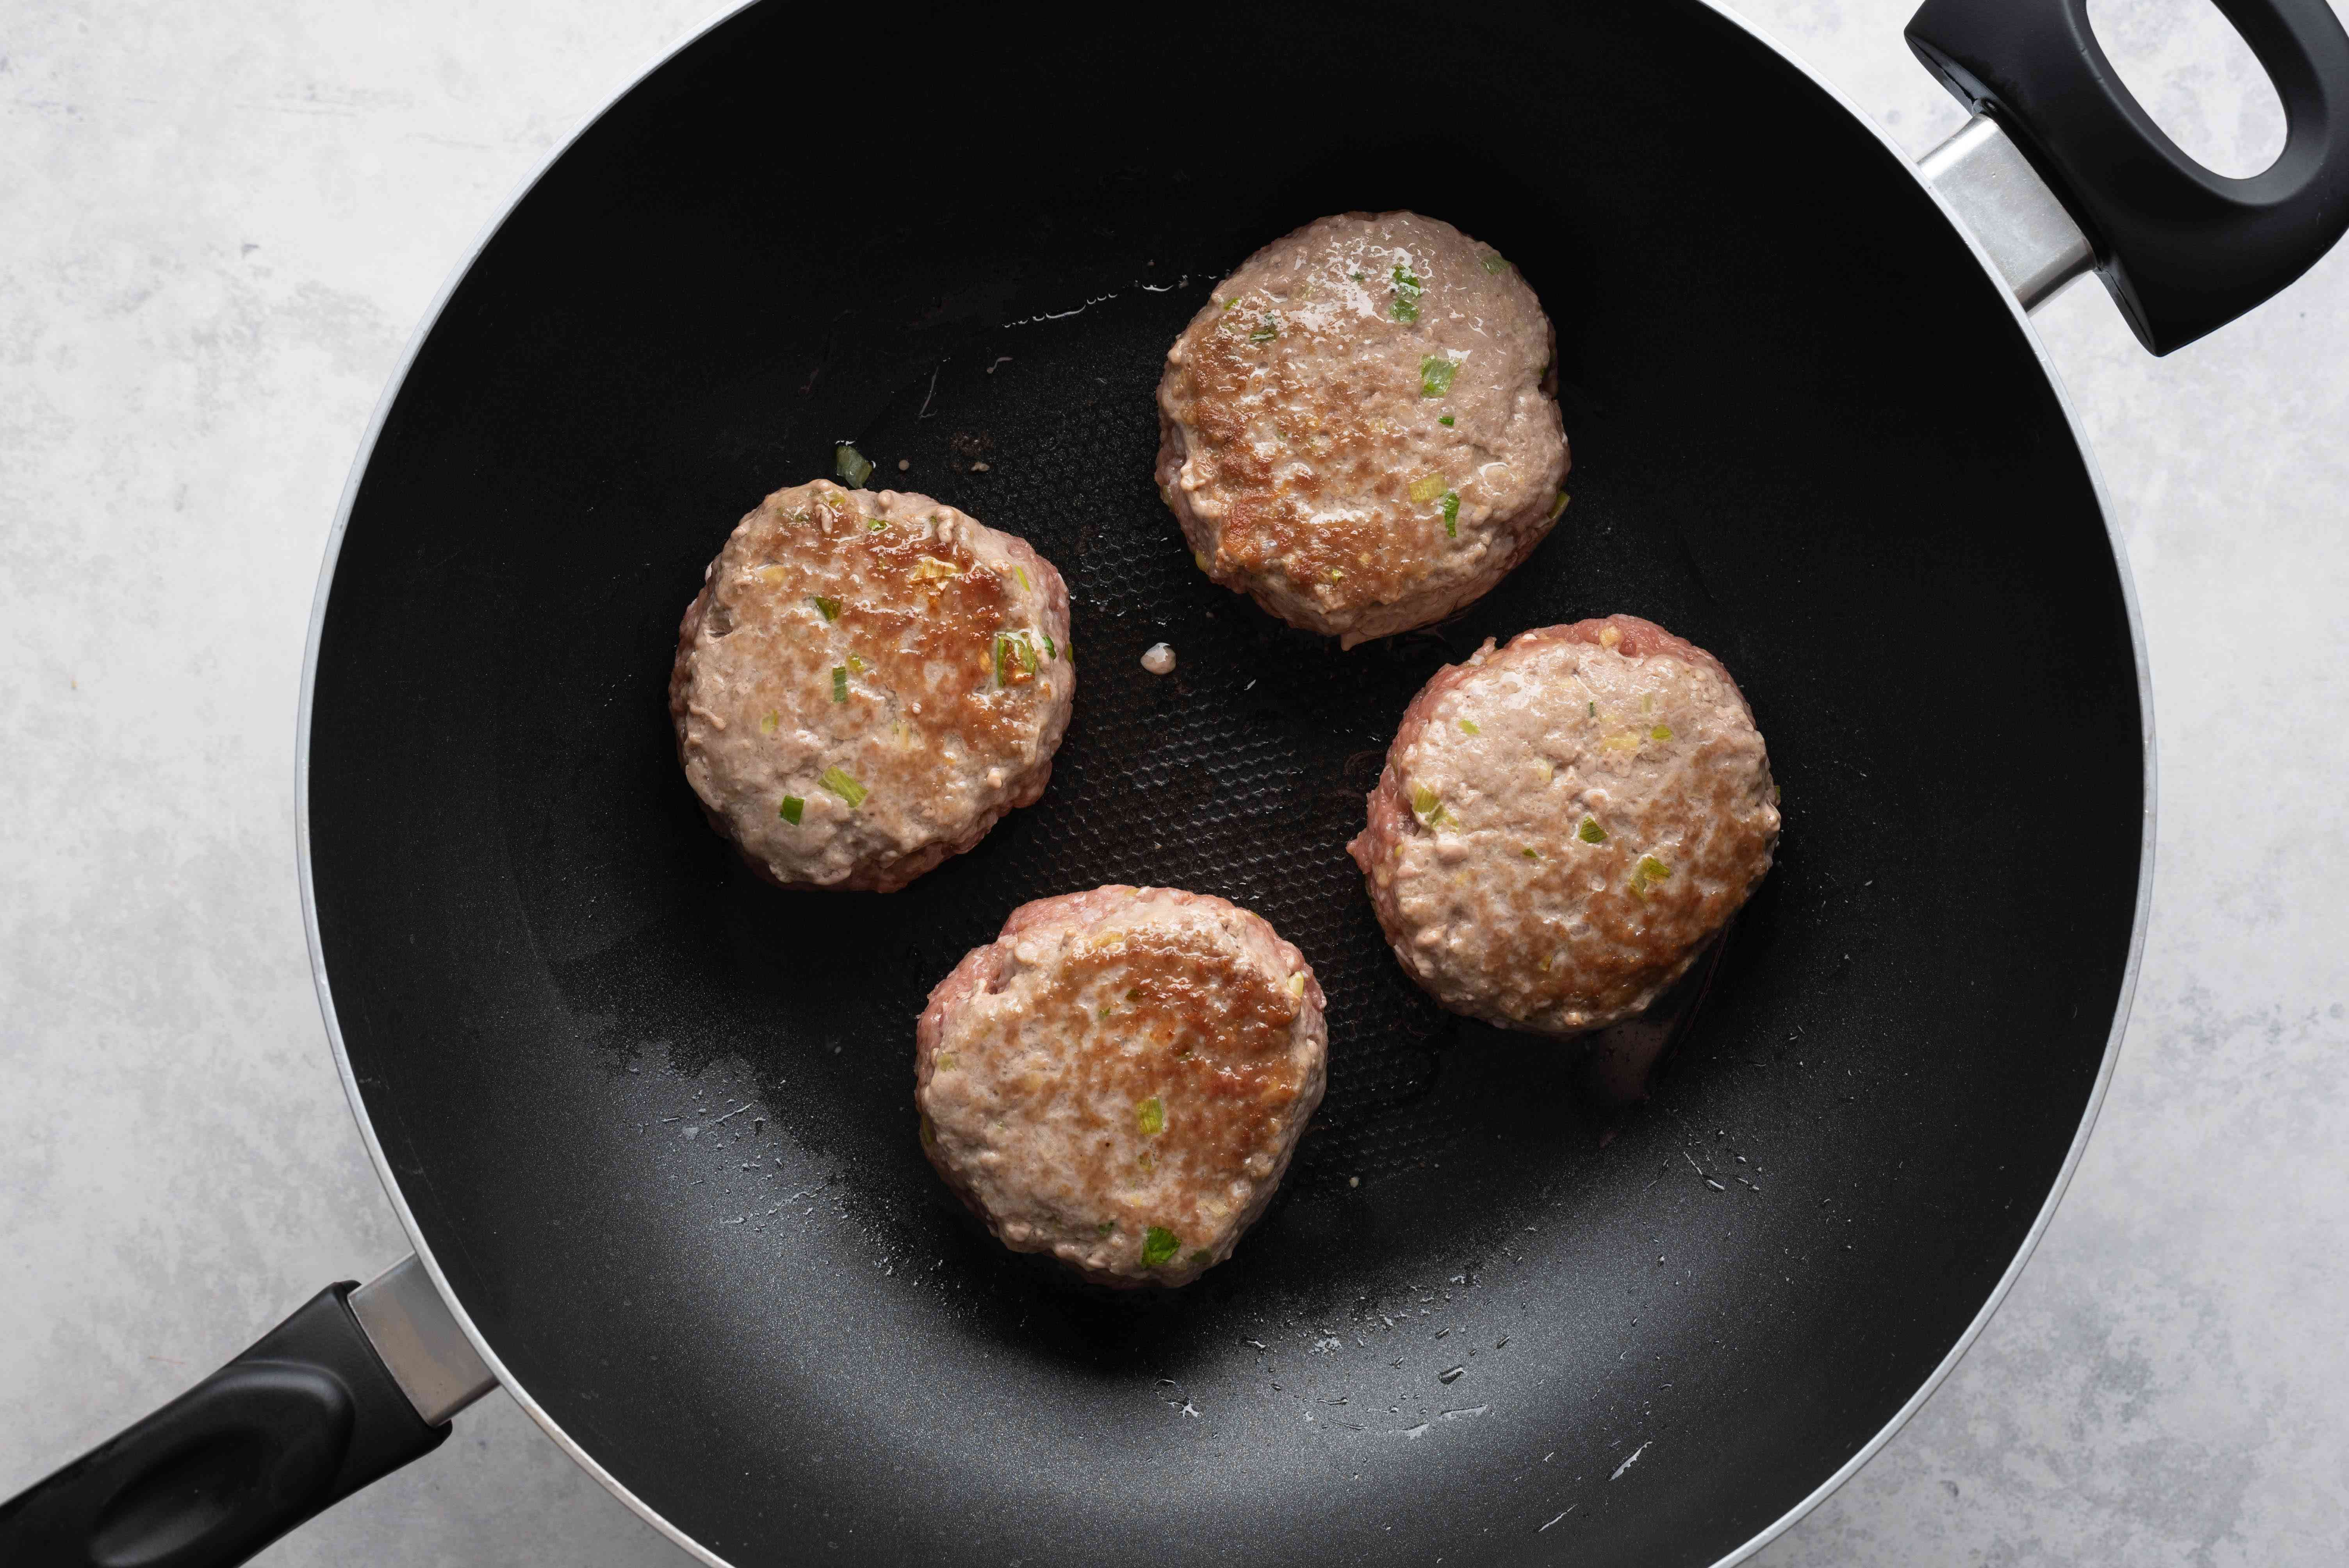 meatballs cooking in a wok